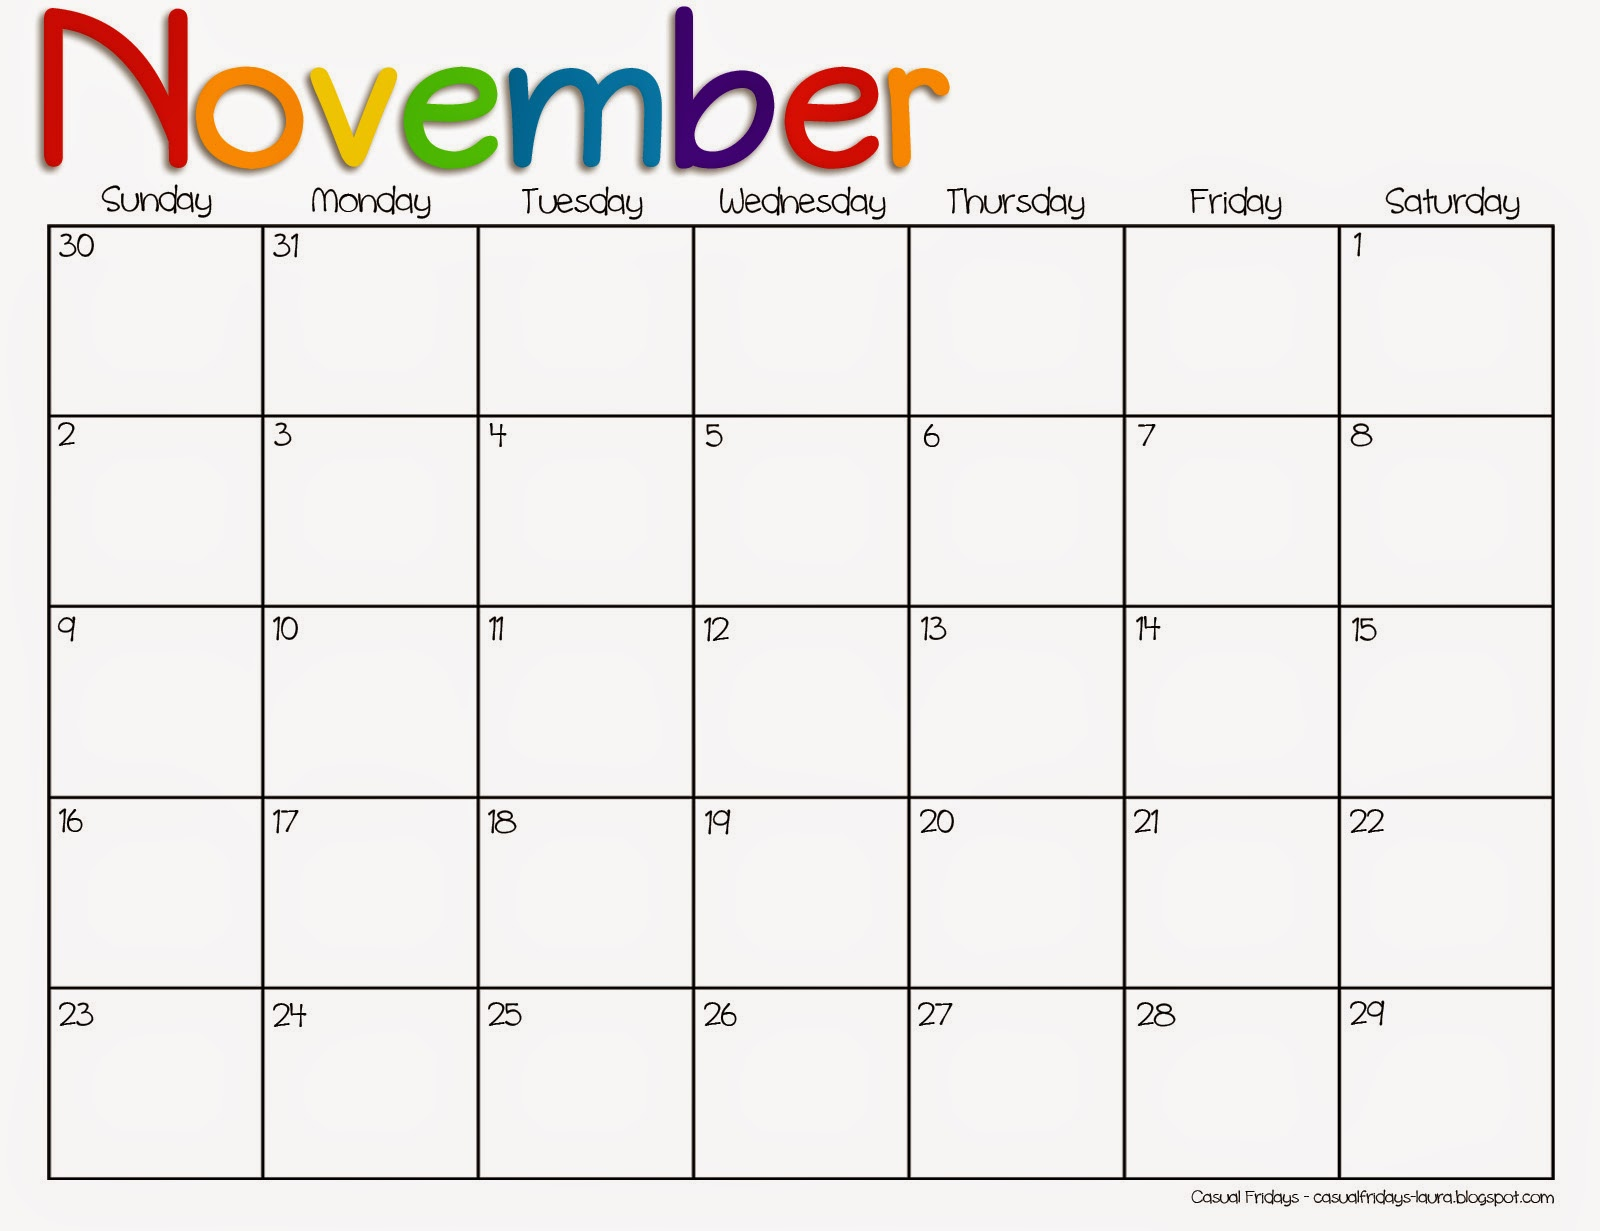 Search Results for: Printable Thanksgiving Calendars For November 2015